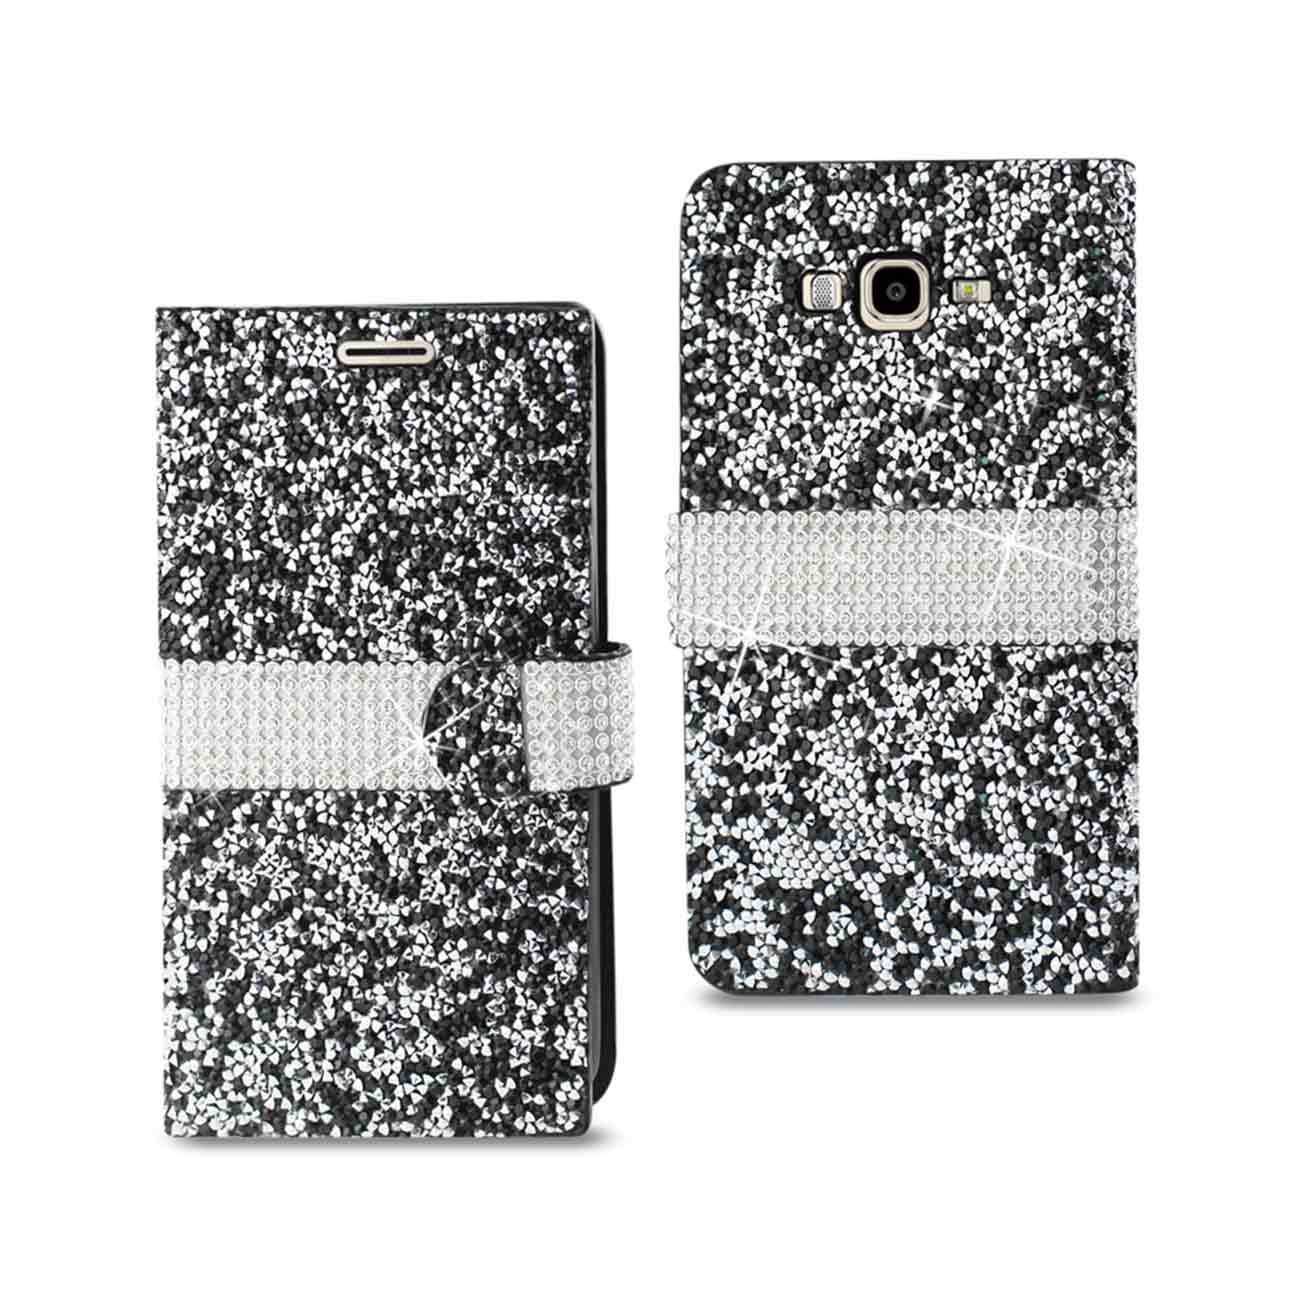 SAMSUNG GALAXY J7 JEWELRY RHINESTONE WALLET CASE IN BLACK